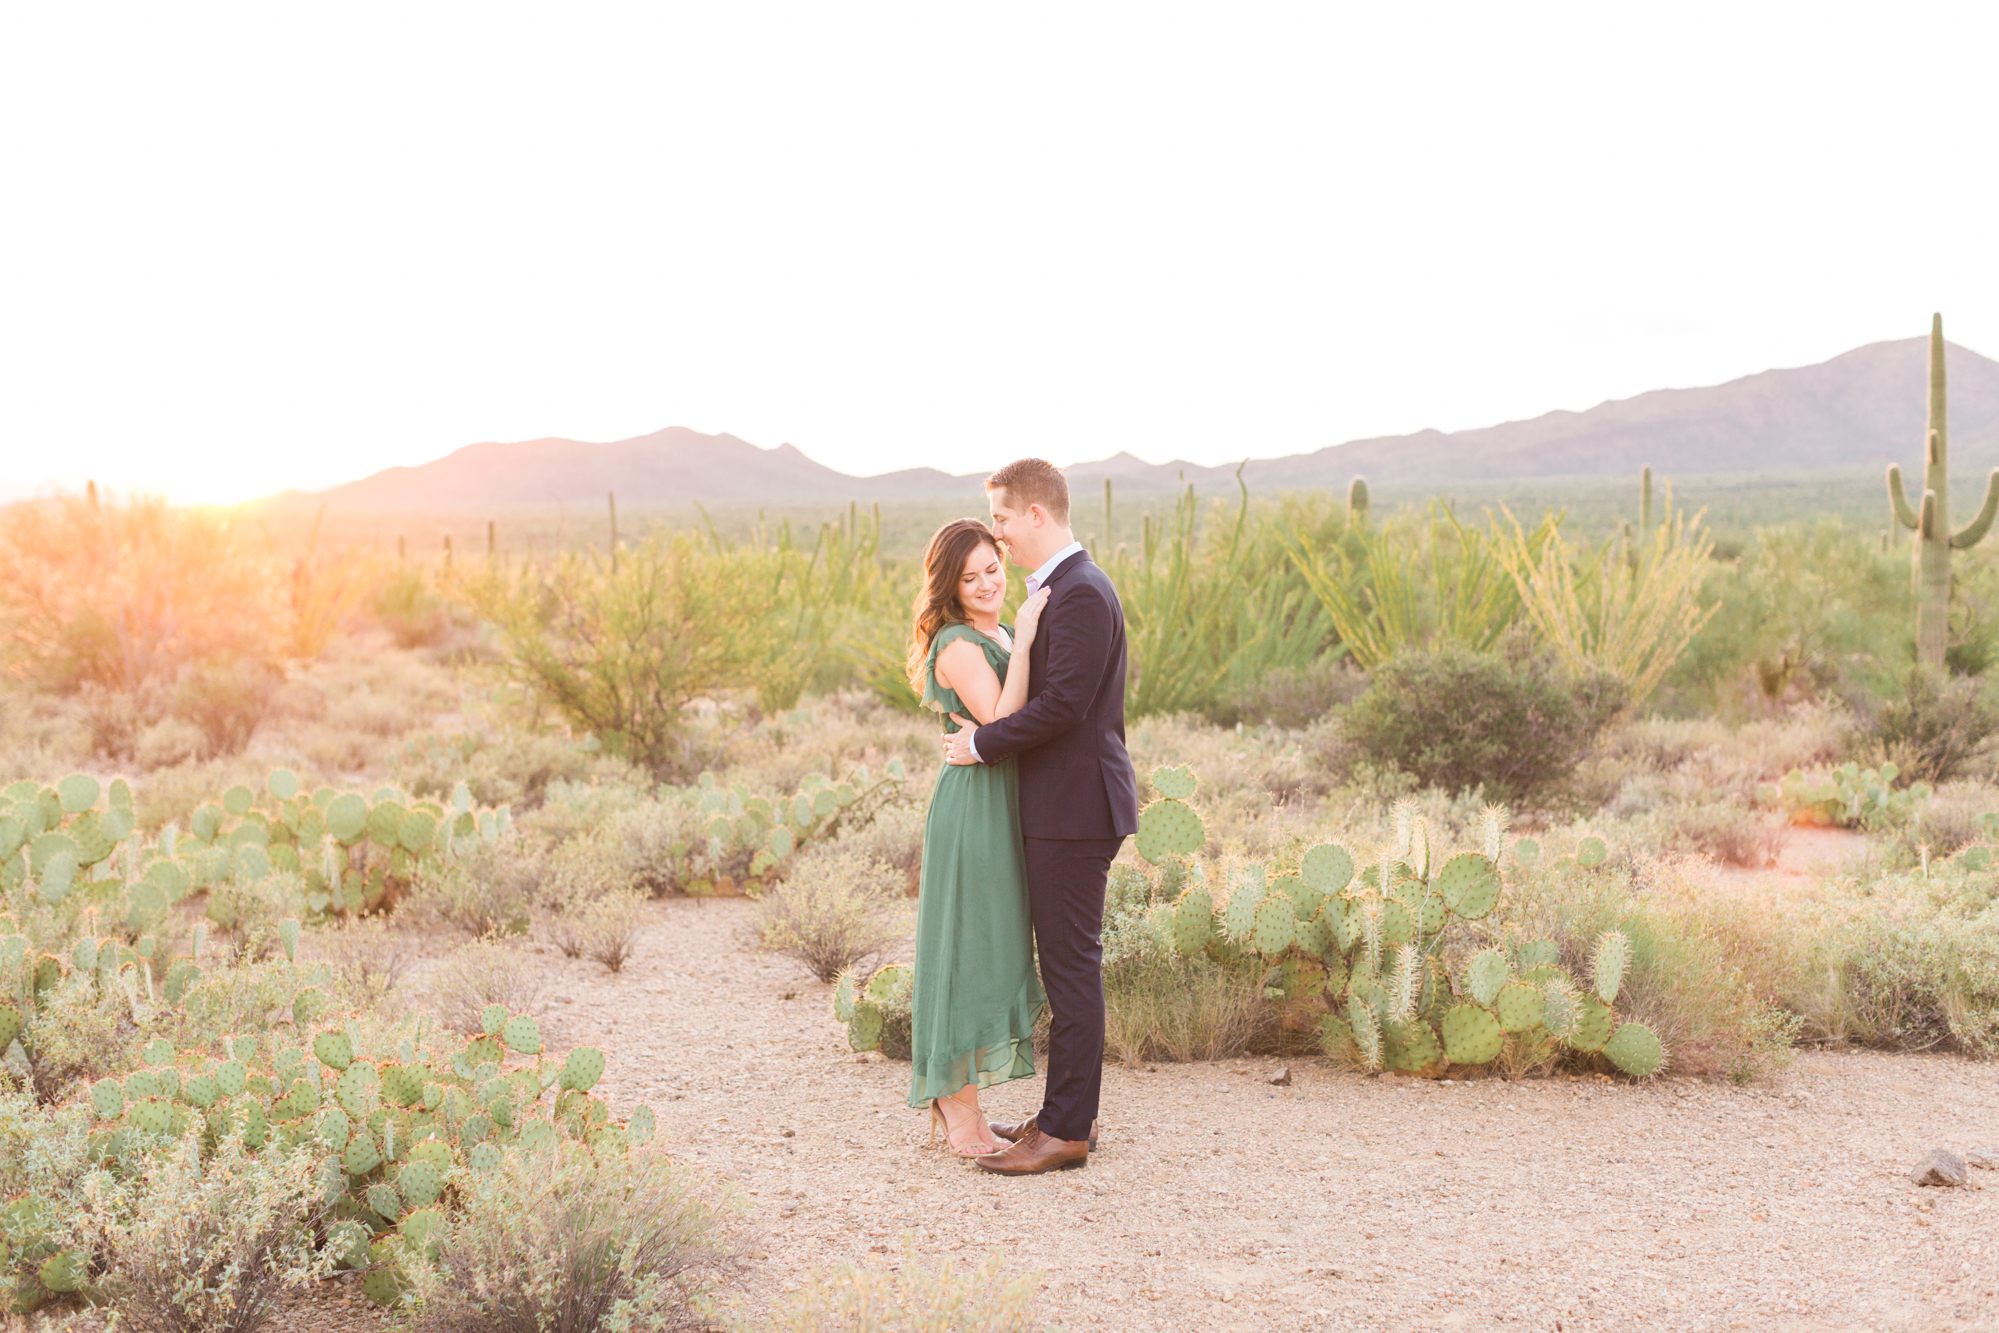 Engagement photo of an adorable couple hugging each other with the Tucson sunset and gorgeous desert in the background at golden hour.